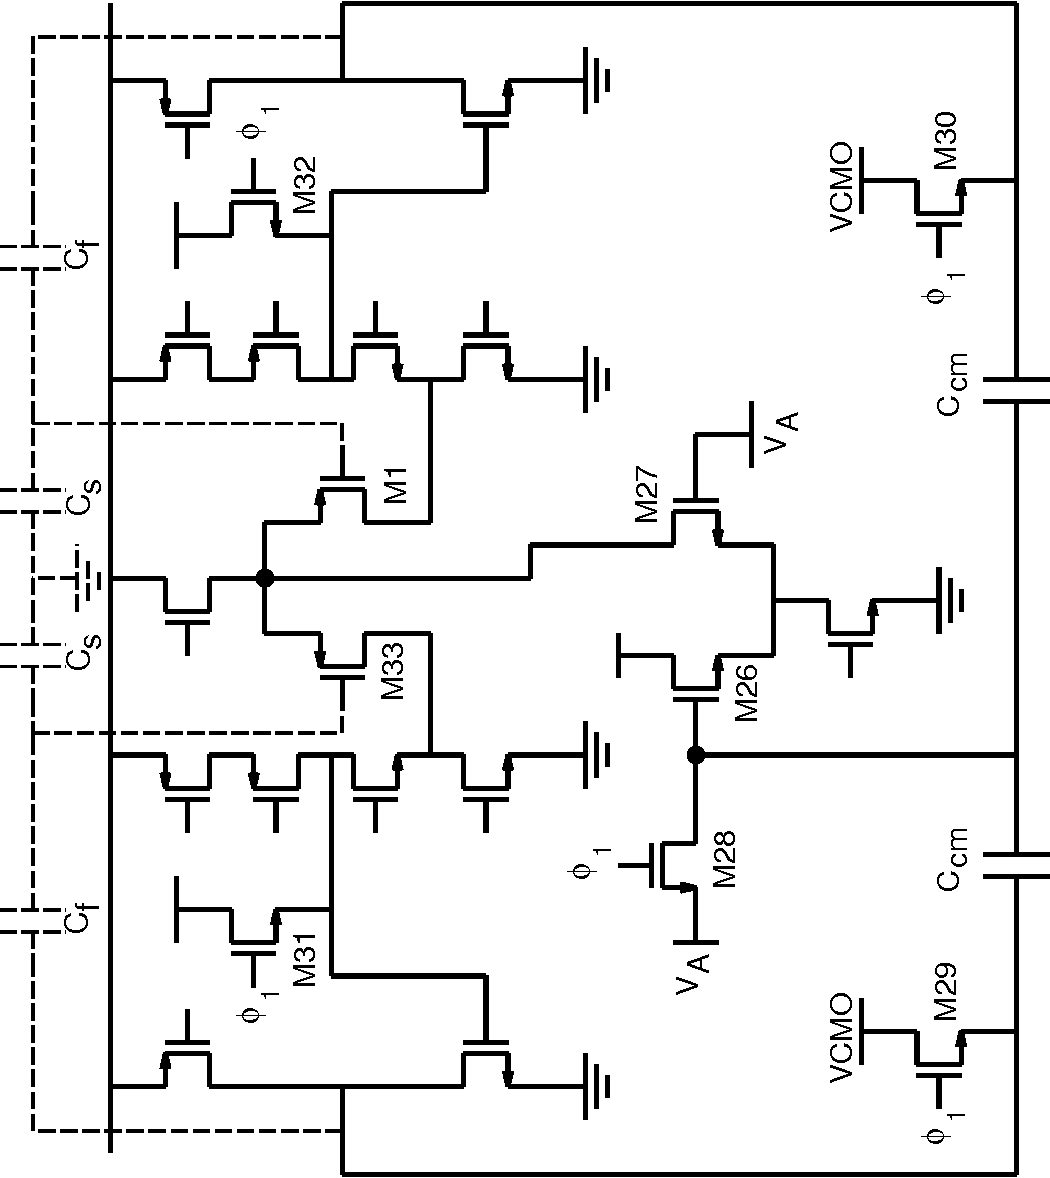 Design For Reliability Of Low Voltage Switched Capacitor Principles Lowvoltage Lowpower Analog Integrated Circuits Semantic Scholar